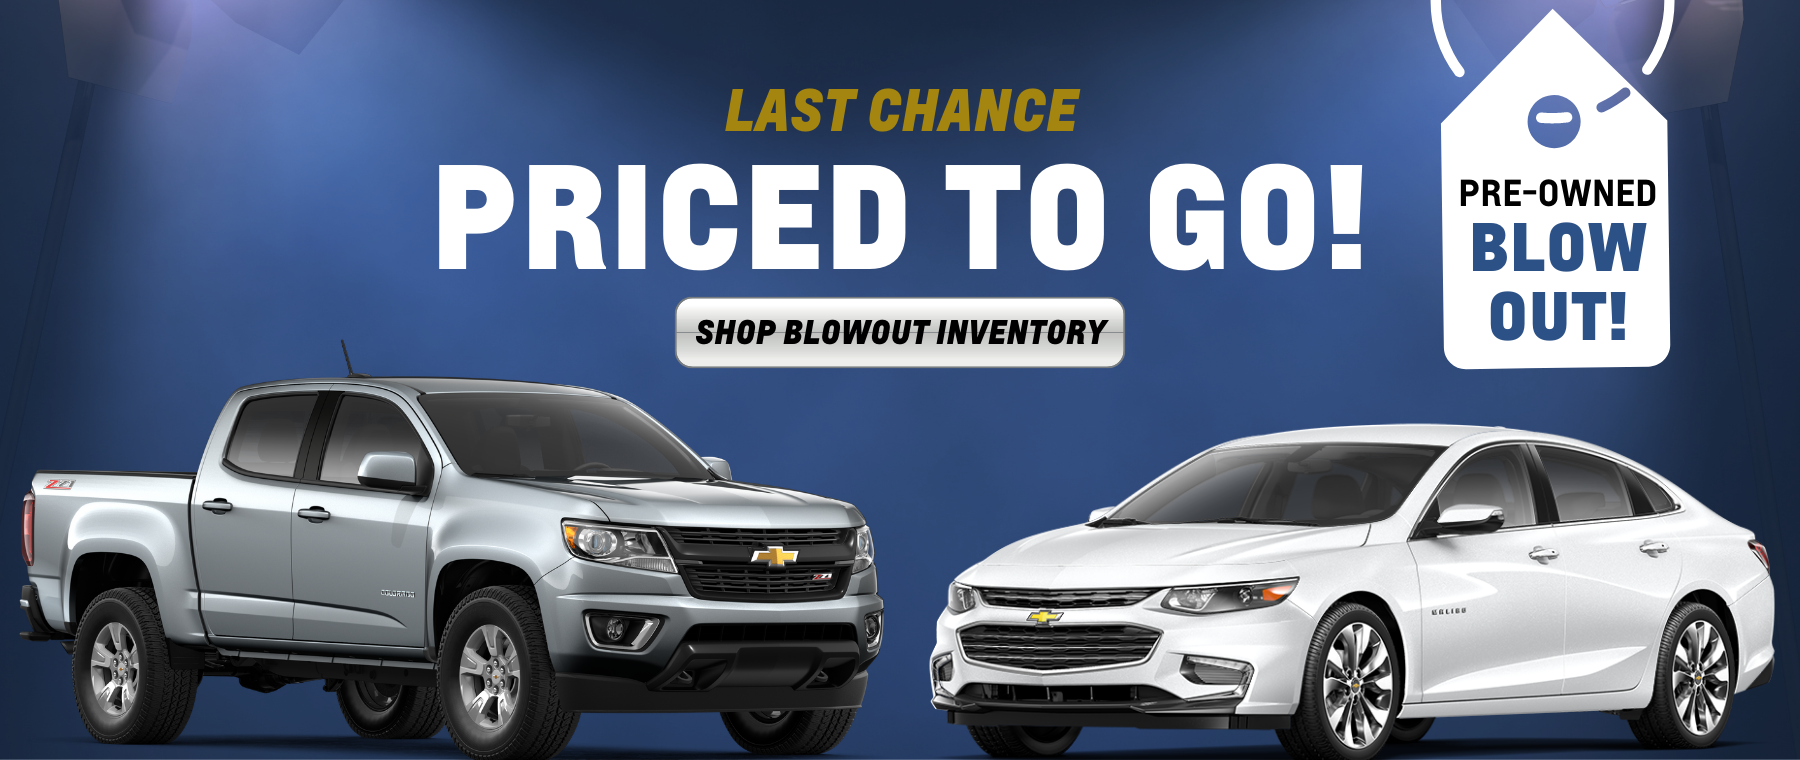 Used Cars Priced to go